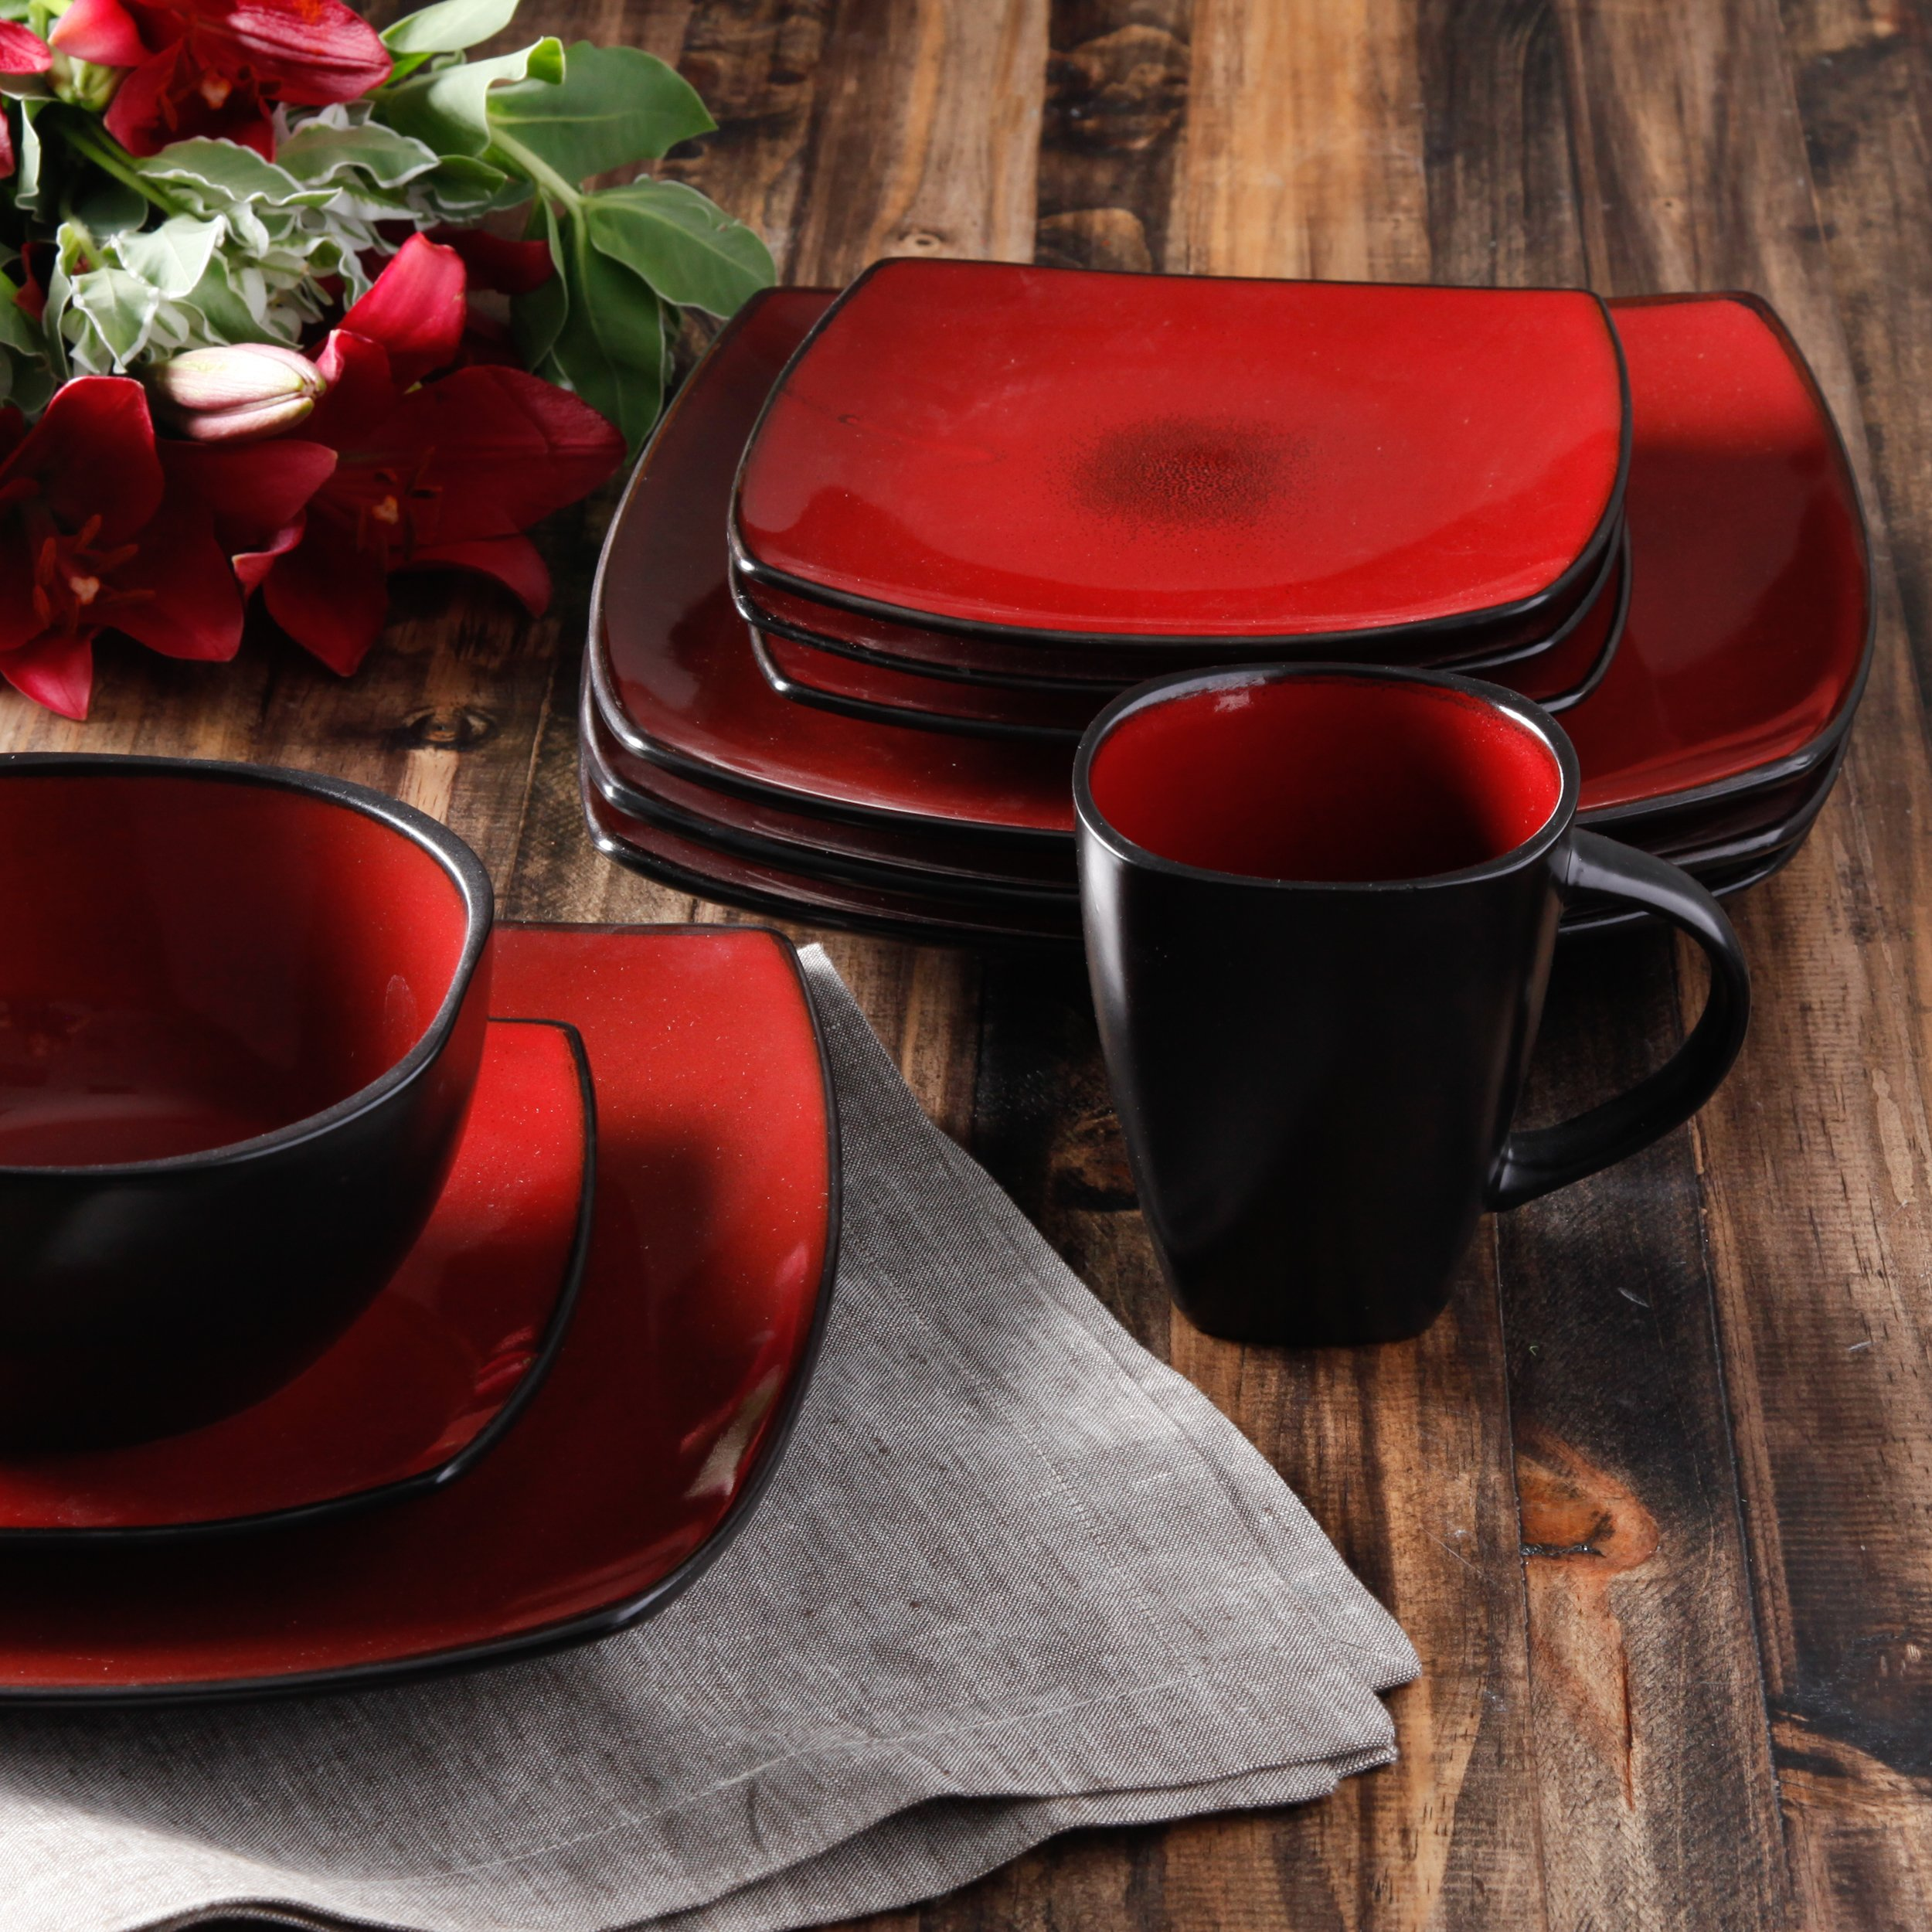 Gibson Elite 61220.16RM Soho Lounge 16-Piece Square Reactive Glaze Dinnerware Set, Red by Gibson (Image #6)